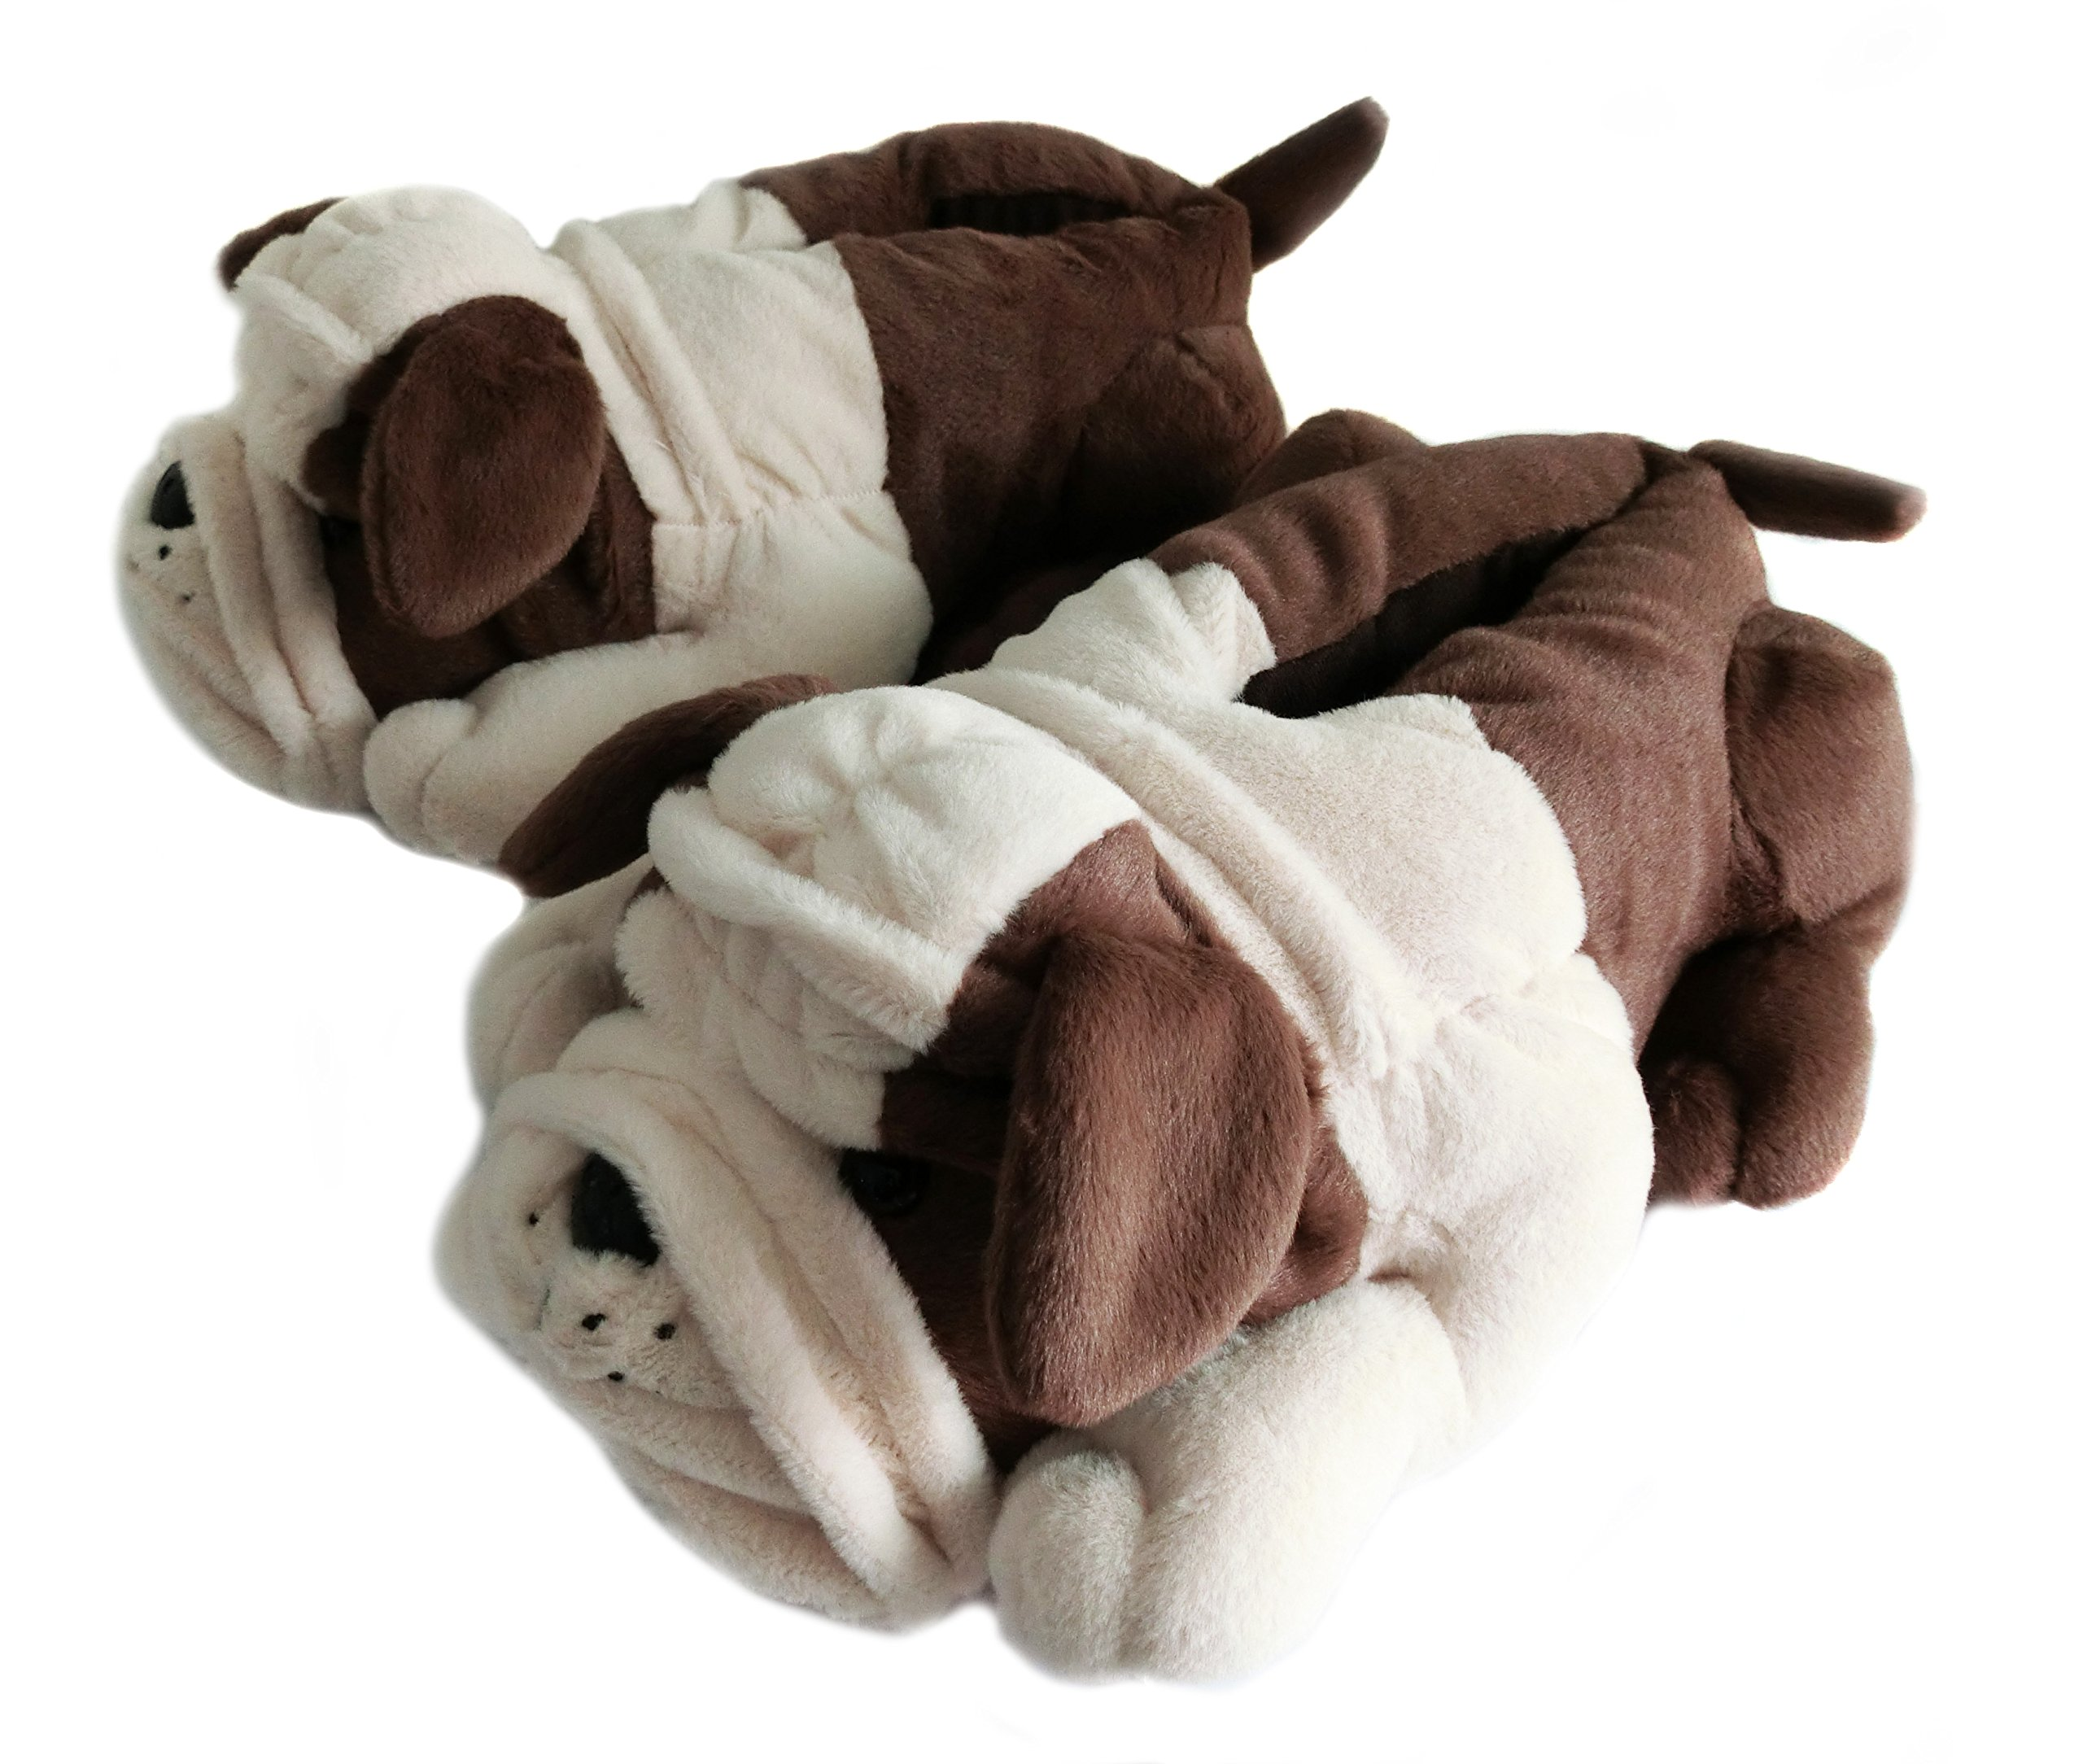 Fuzzy Winter Indoor Animal Bulldog Slippers for Adult and Kid, Bull Dogs (US Women Size 7-9, Coffee Bulldog) by Onmygogo (Image #1)